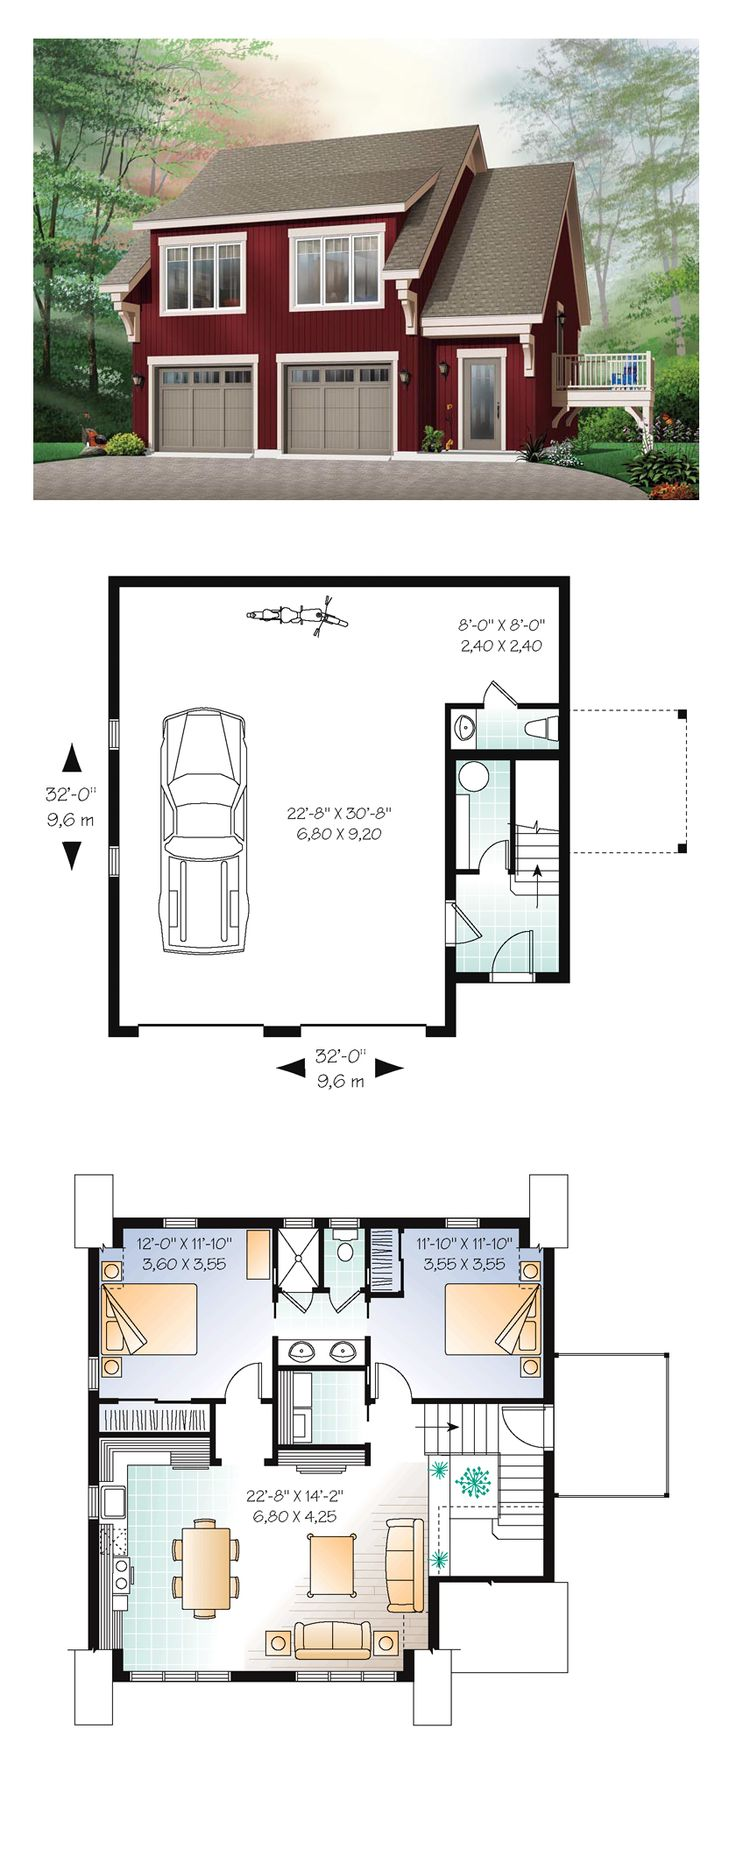 Studio Apartments Floor Plans best 20+ garage apartment plans ideas on pinterest | 3 bedroom